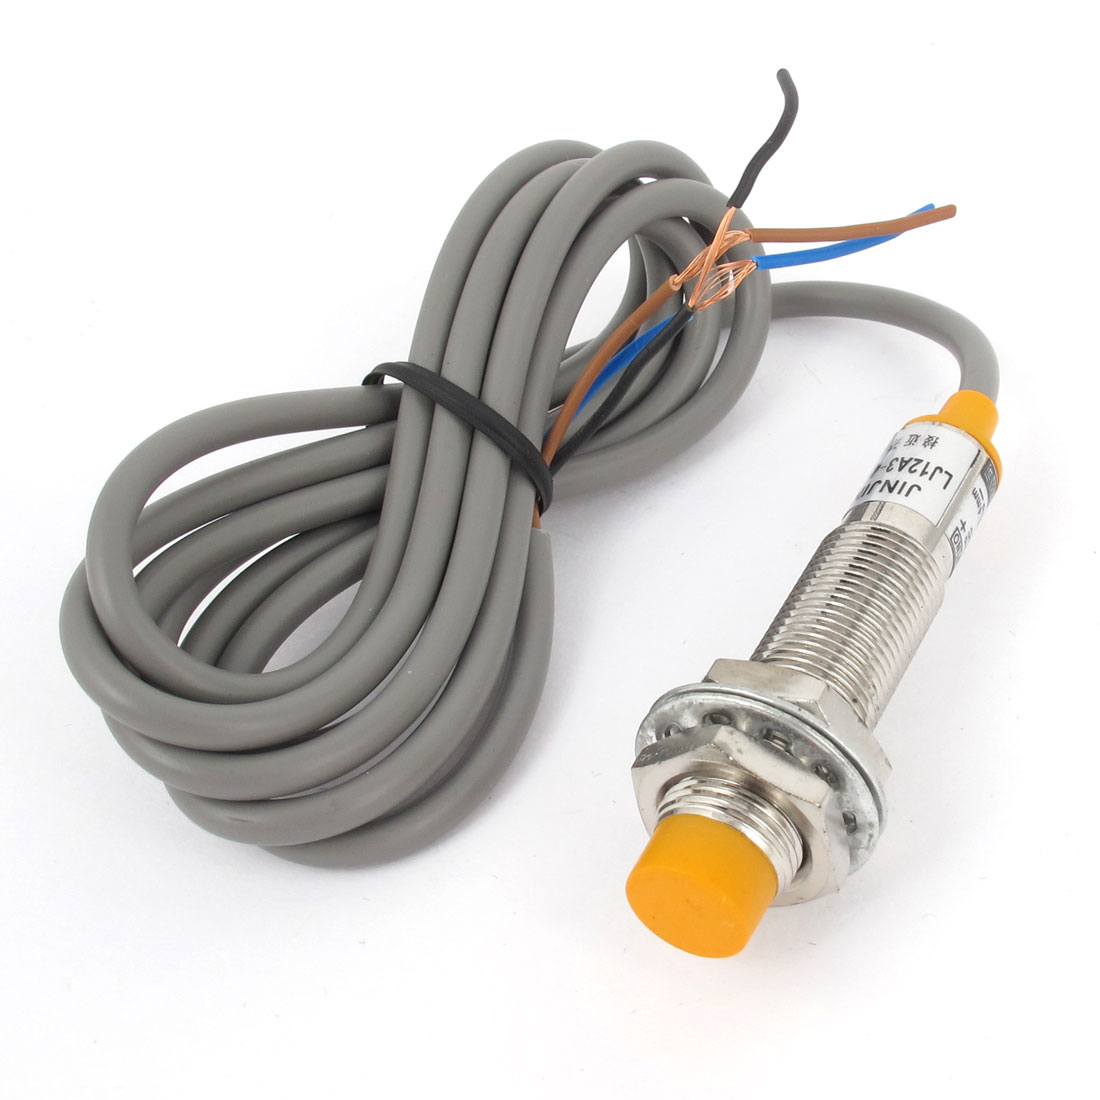 LJ12A3-4-Z/BY 4mm Approach NO Inductive Proximity Sensor Switch DC 6-36V